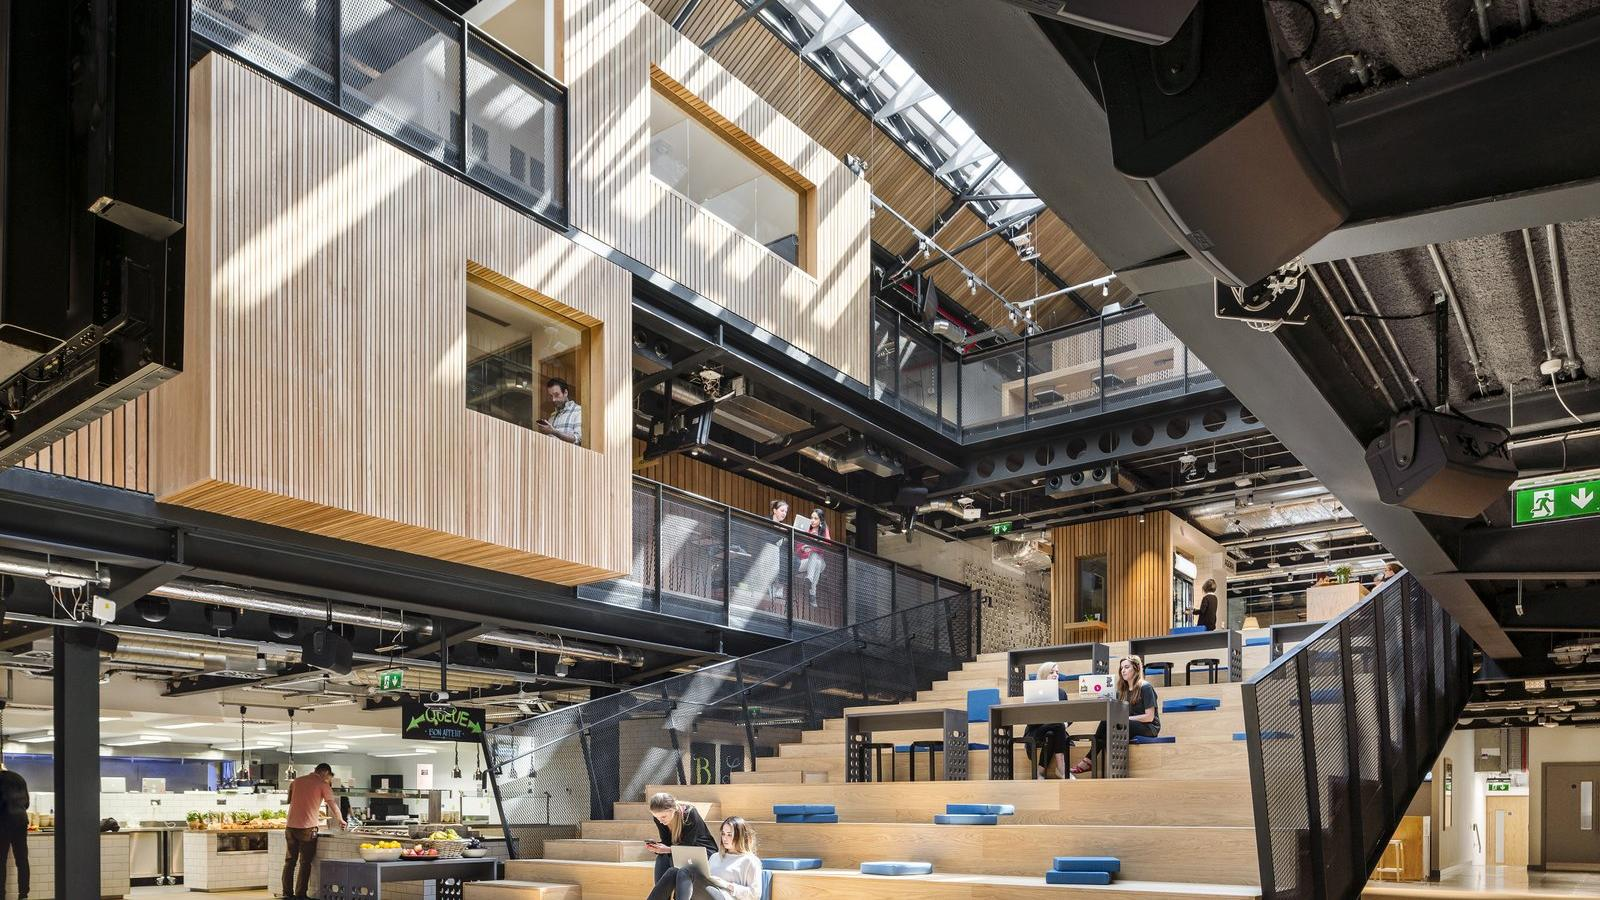 Architecture: Airbnb Offices in Dublin